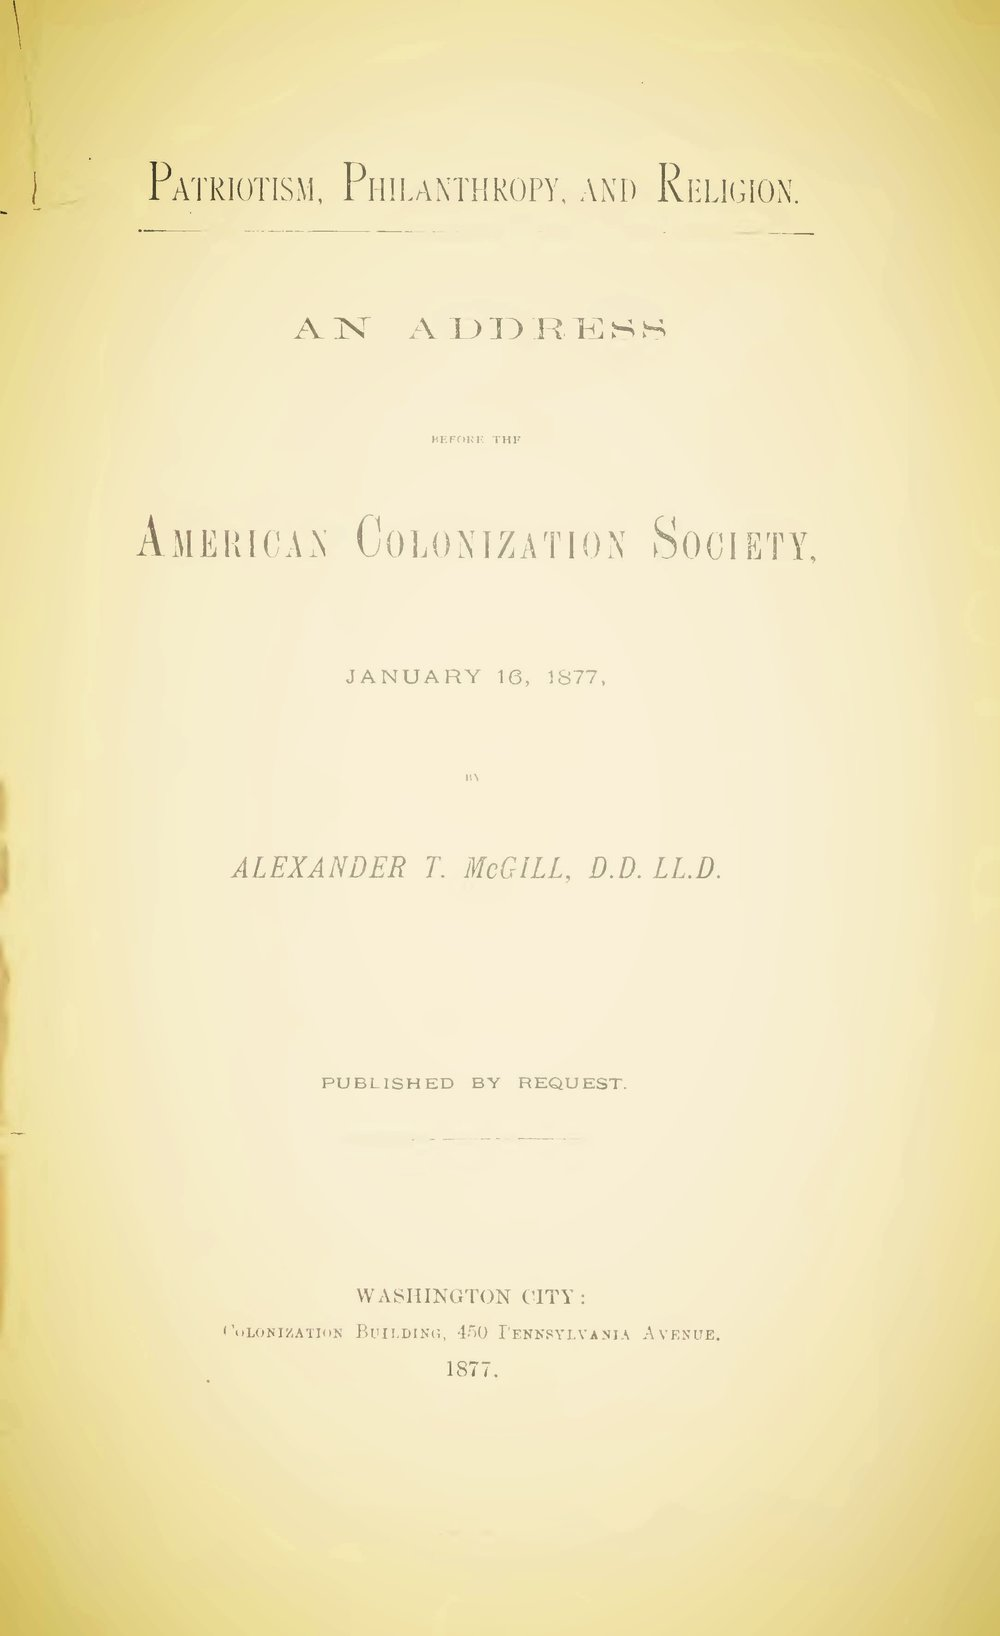 McGill, Alexander Taggart, Patriotism, Philanthropy, and Religion Title Page.jpg